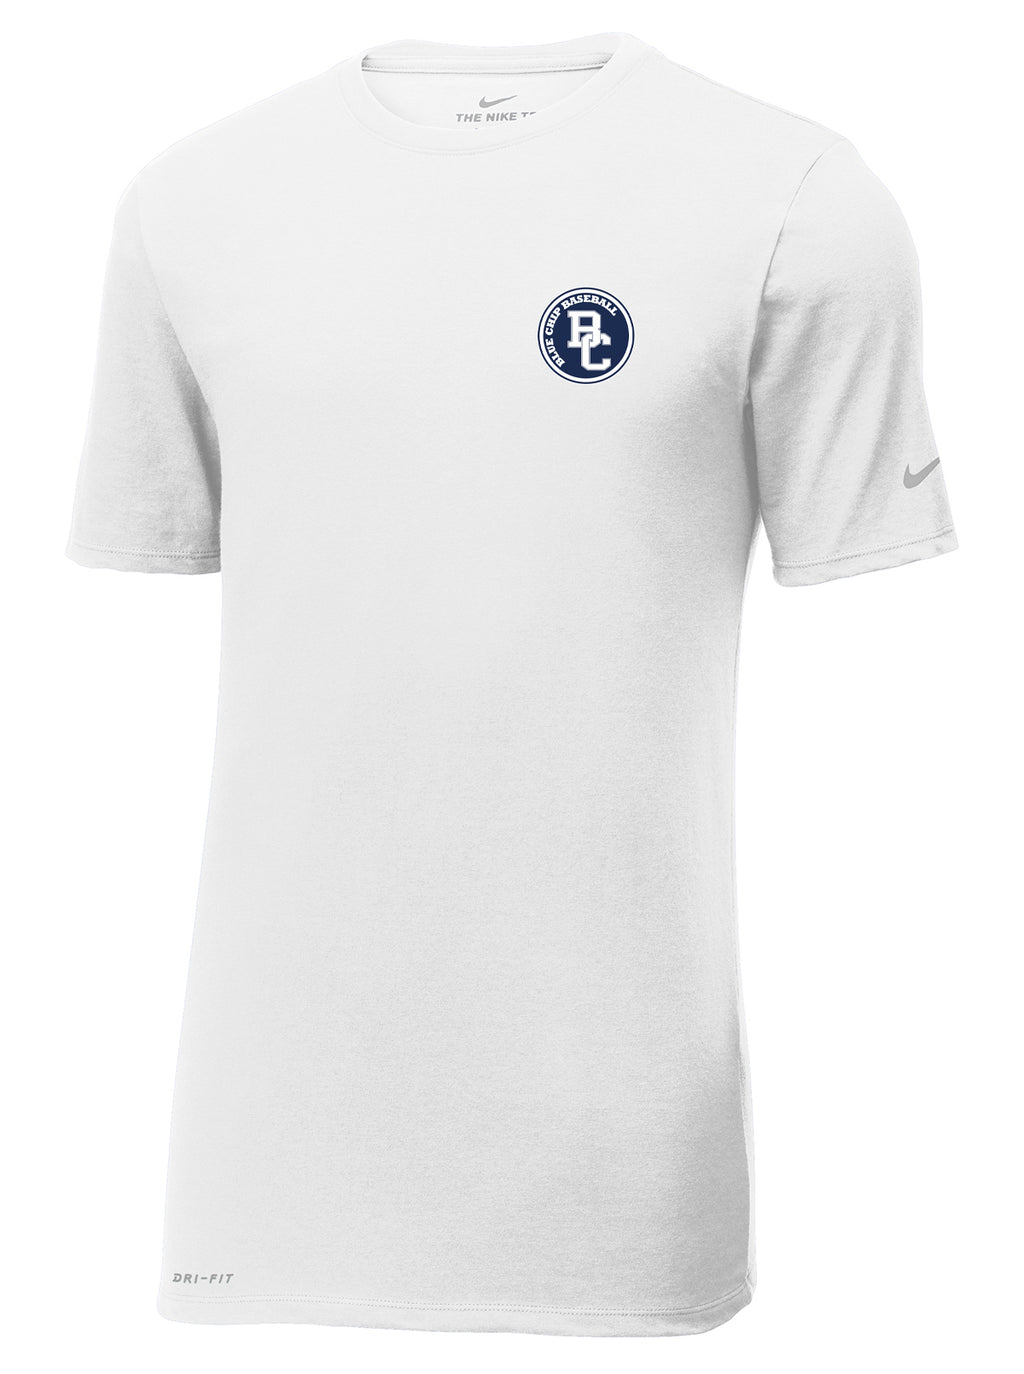 BlueChip Baseball Nike Dri-FIT Tee